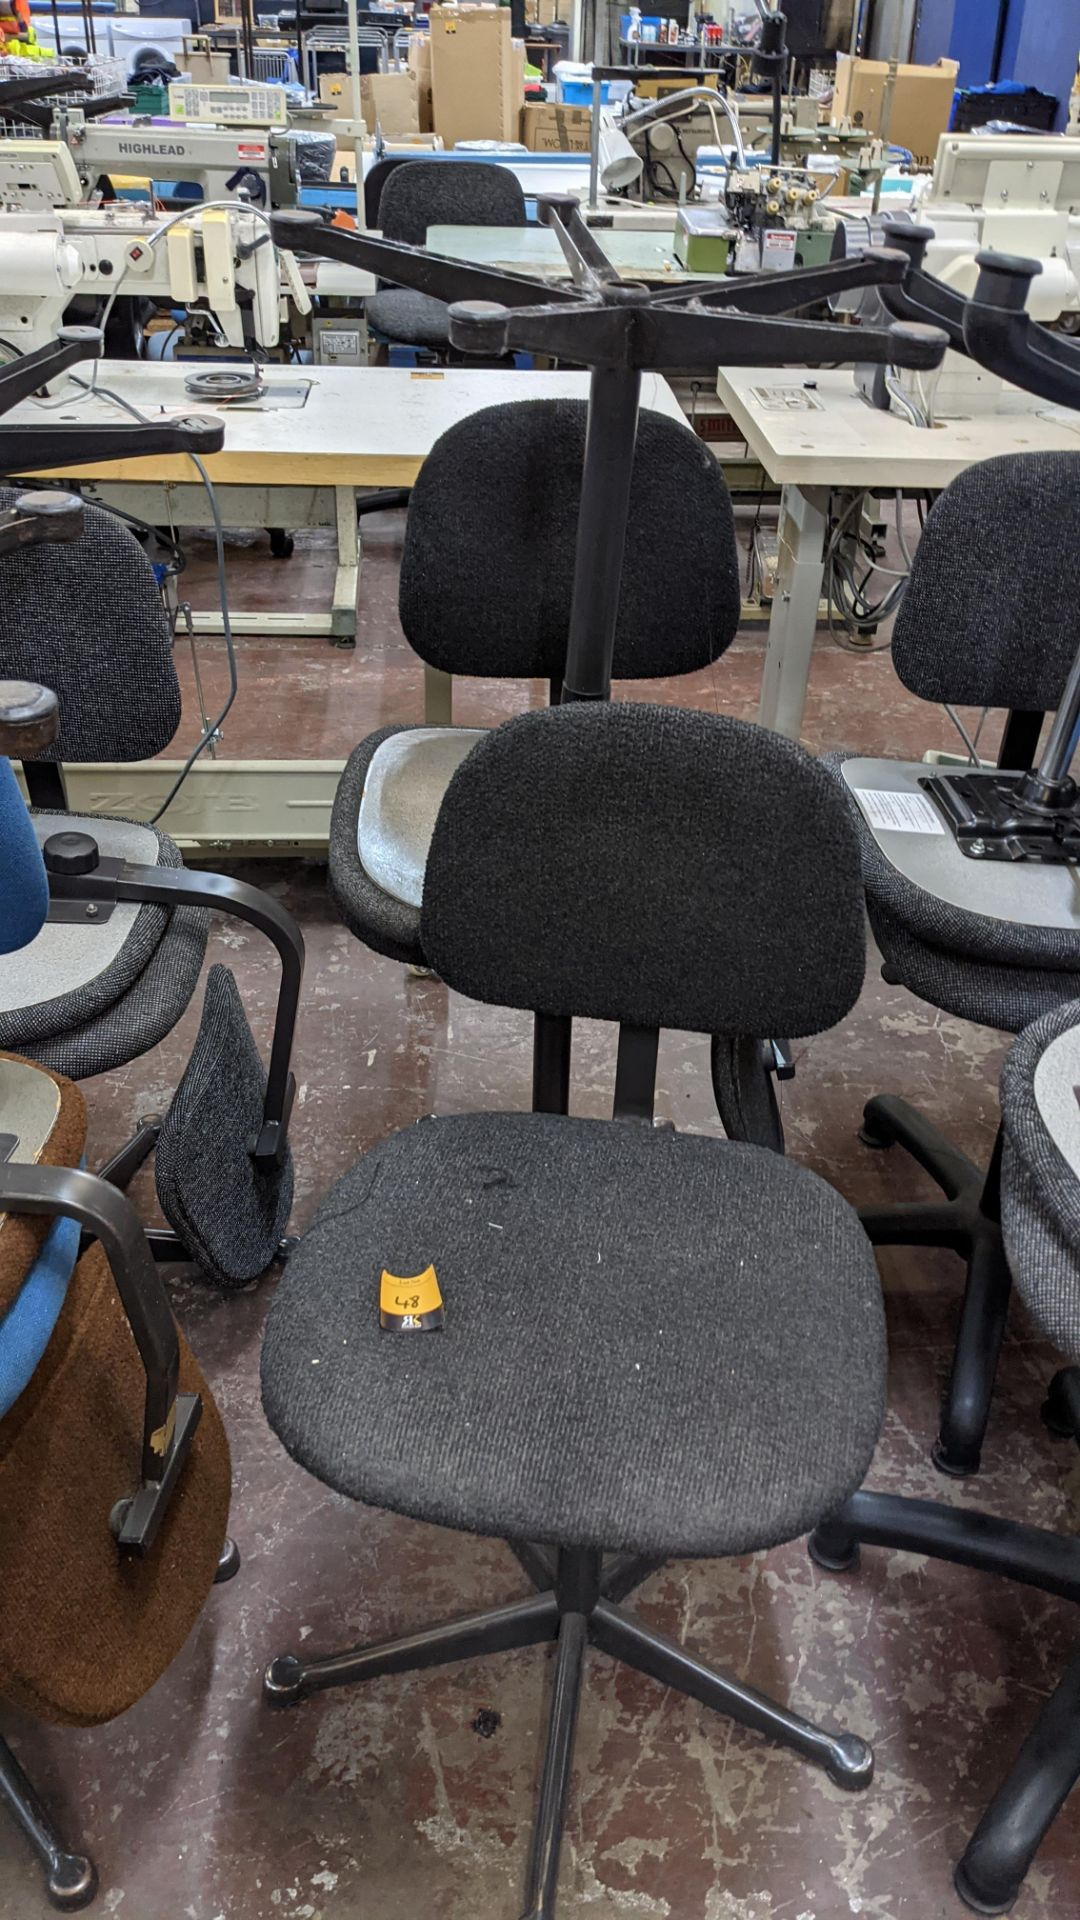 7 off assorted machinists chairs - Image 6 of 9